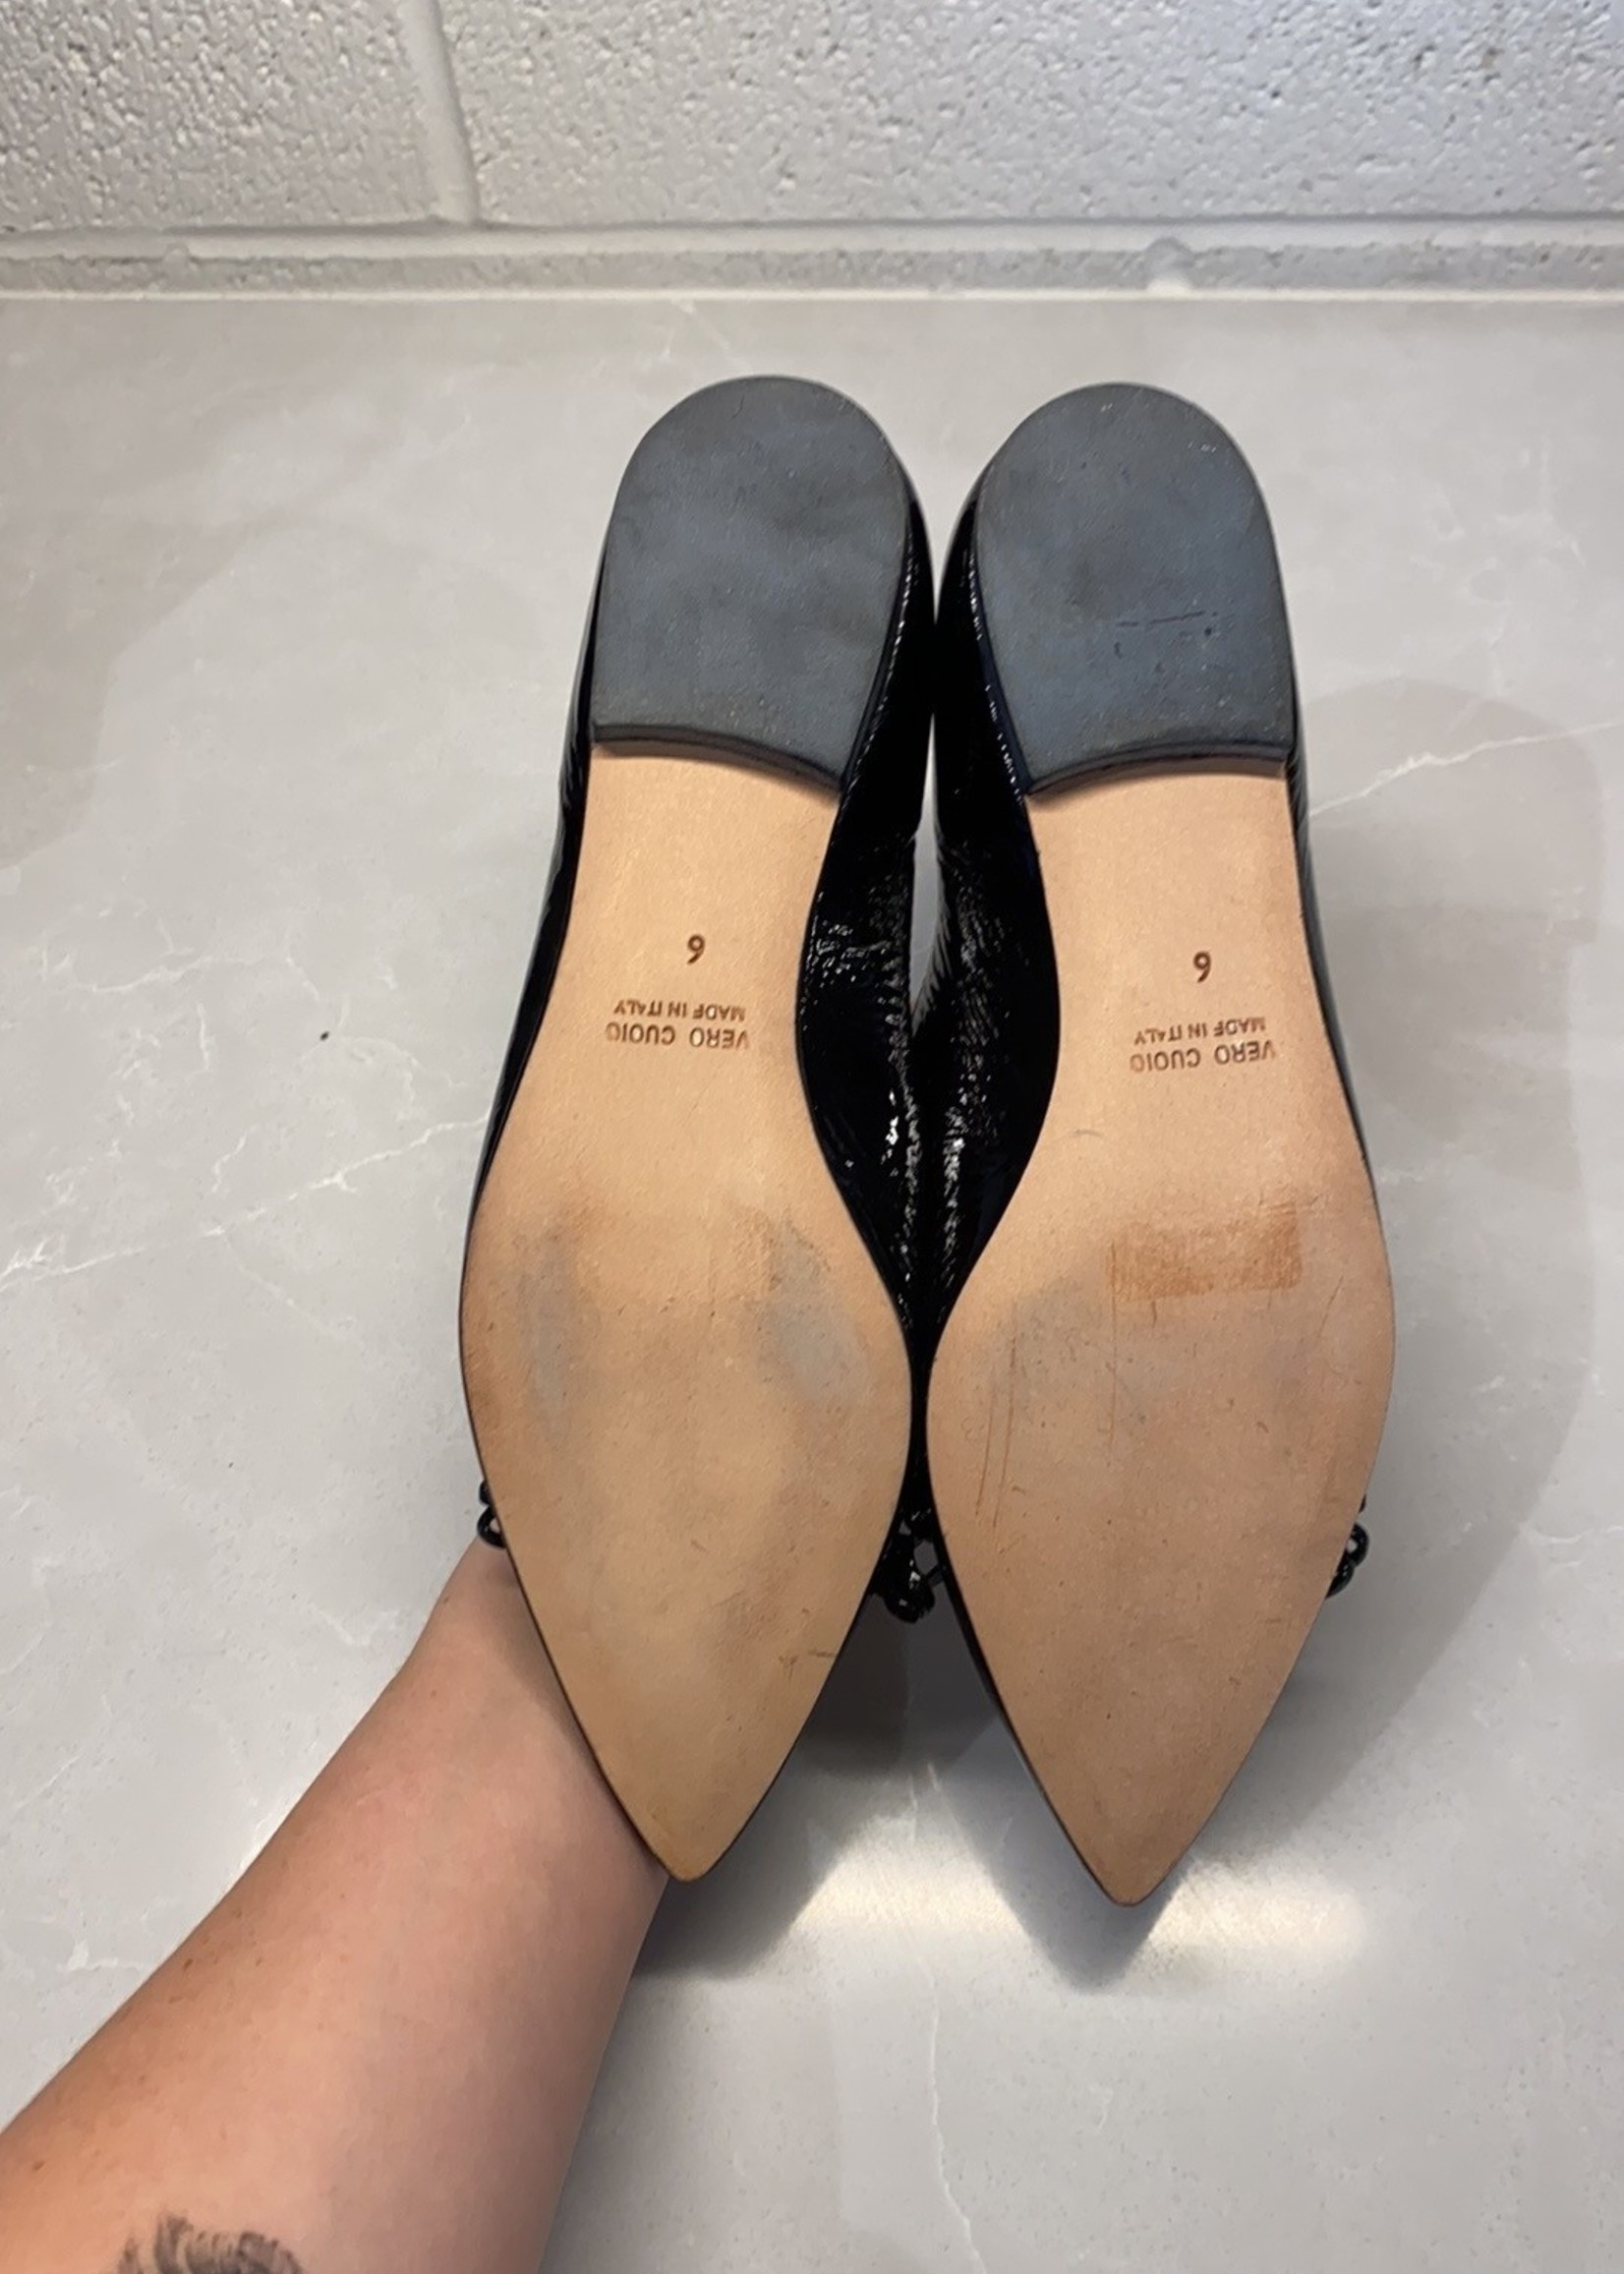 Butter Black Pointed Toe Flats 6 (Retail: $145)